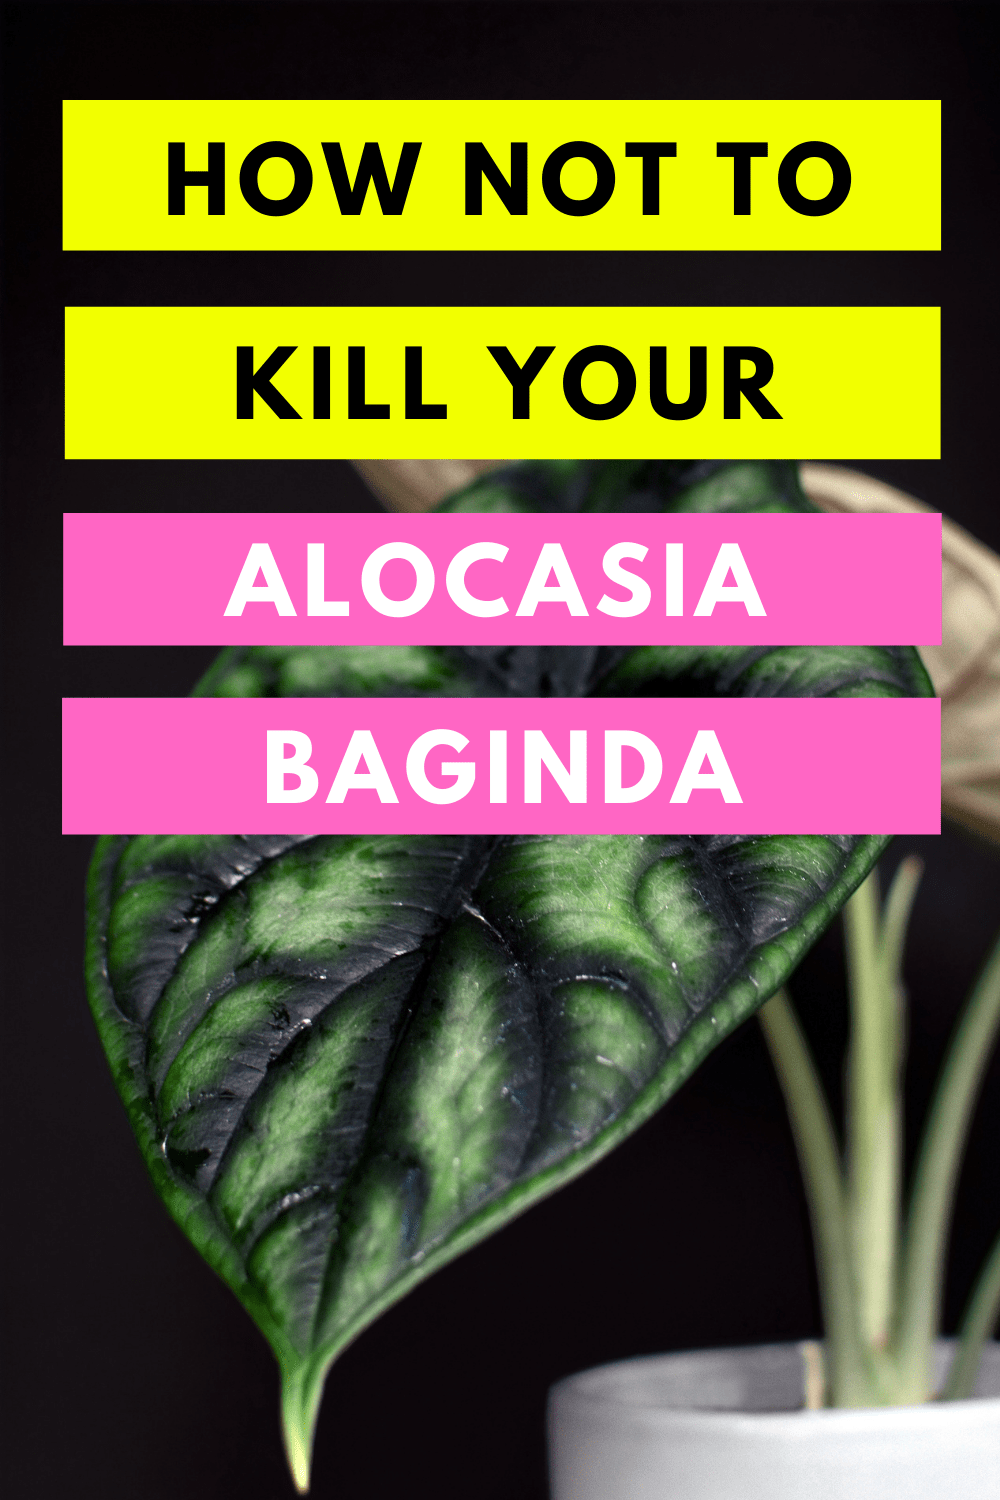 How Not To Kill Your Alocasia Baginda Dragon Scale